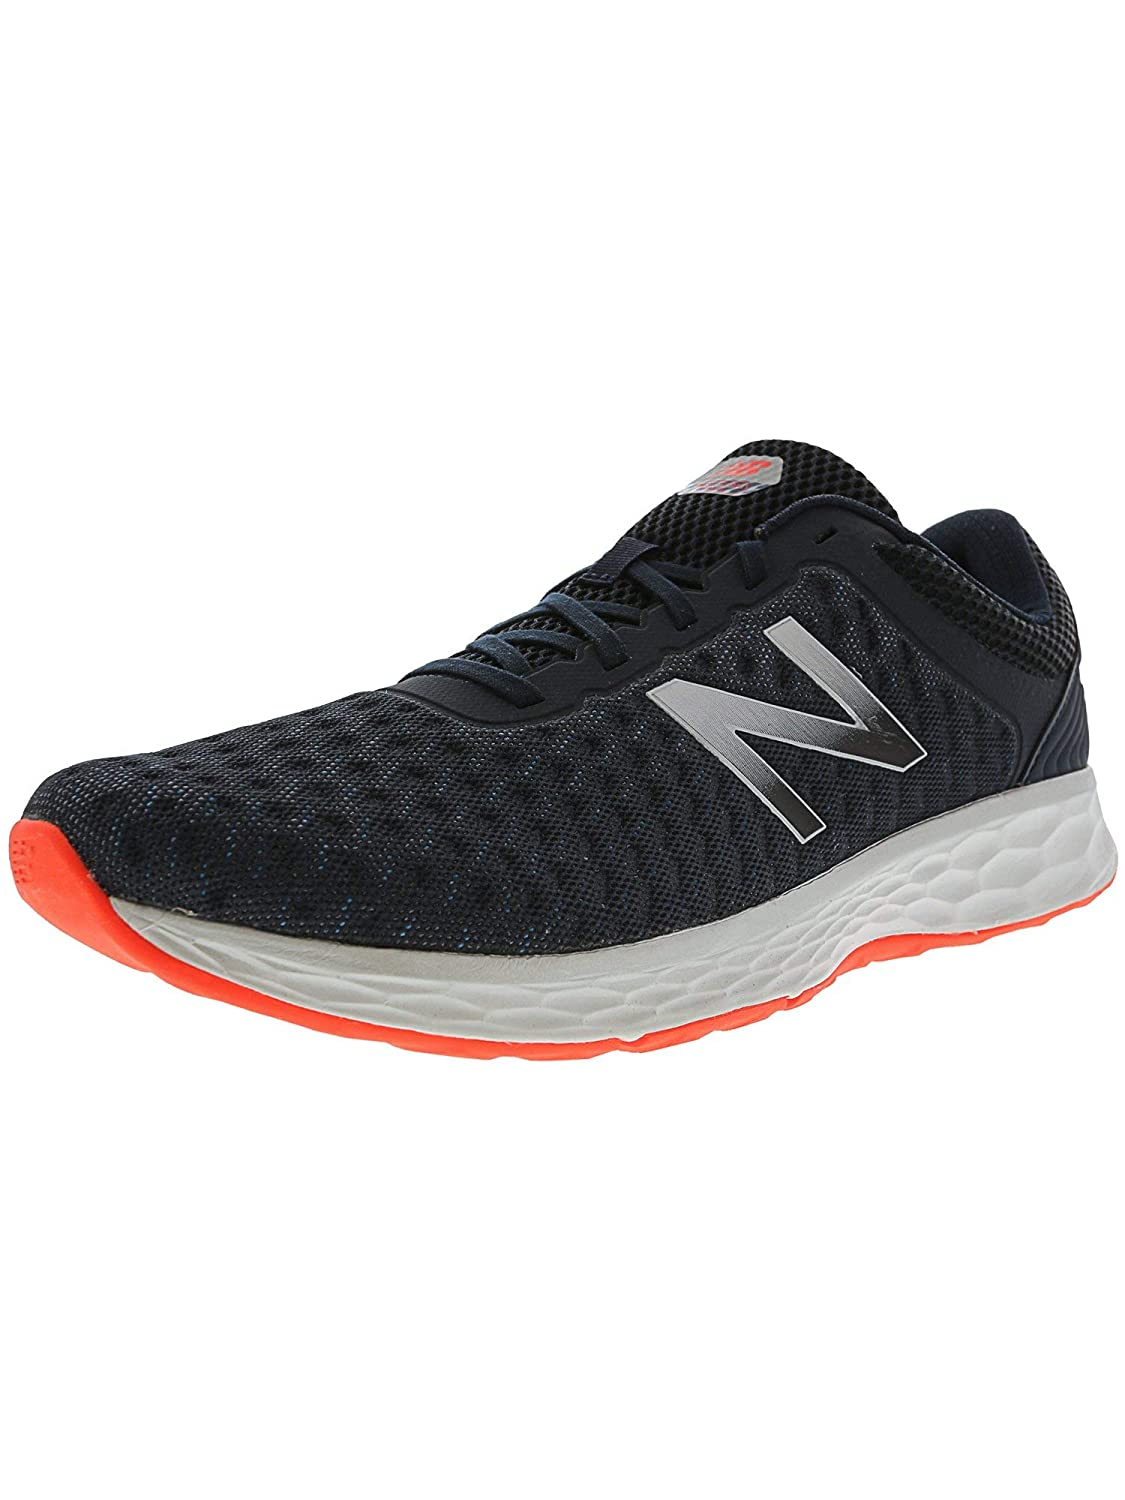 matching in colour special discount of sneakers for cheap New Balance Men's Kaymin V1 Fresh Foam Running Shoe